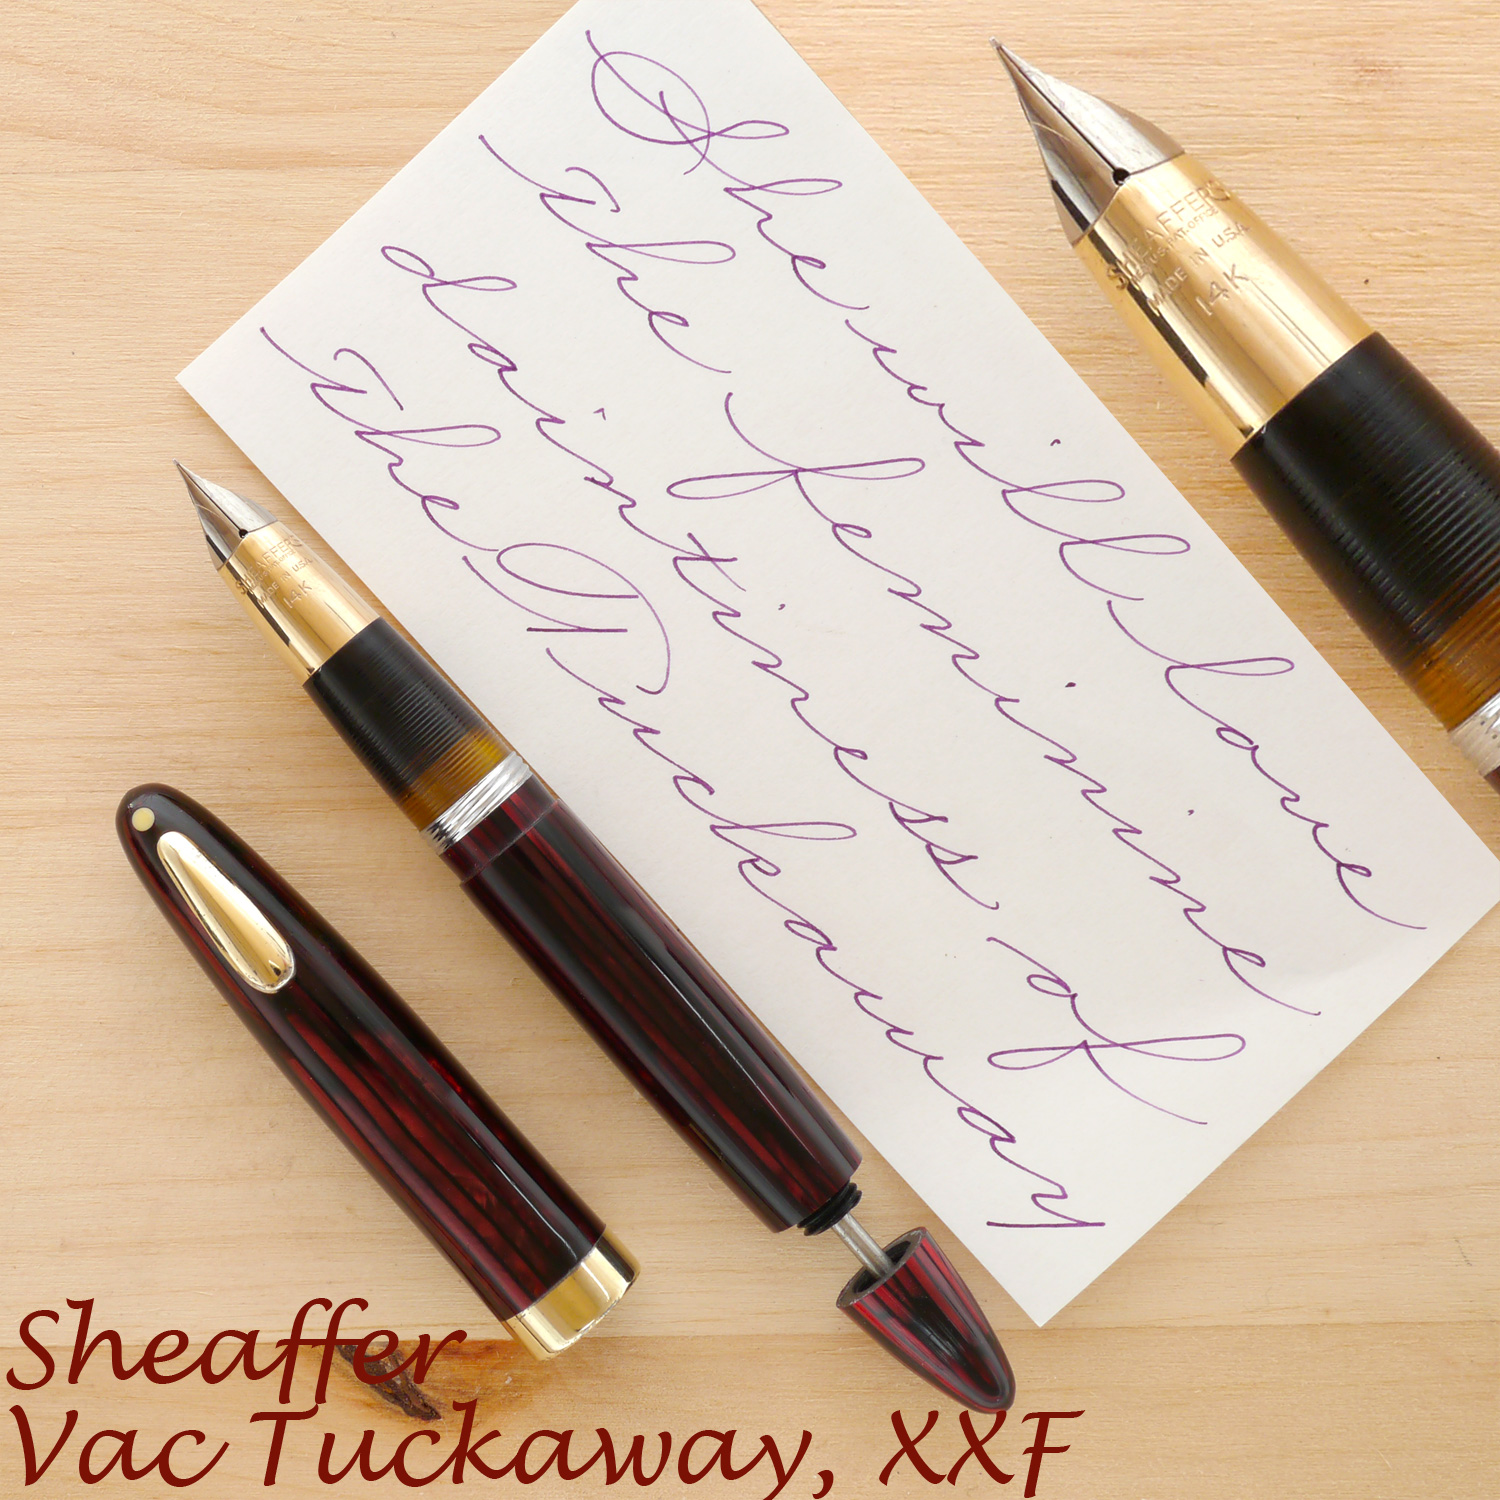 Sheaffer Tuckaway Vac in Carmine, XXF, uncapped, with the plunger rod partially extended